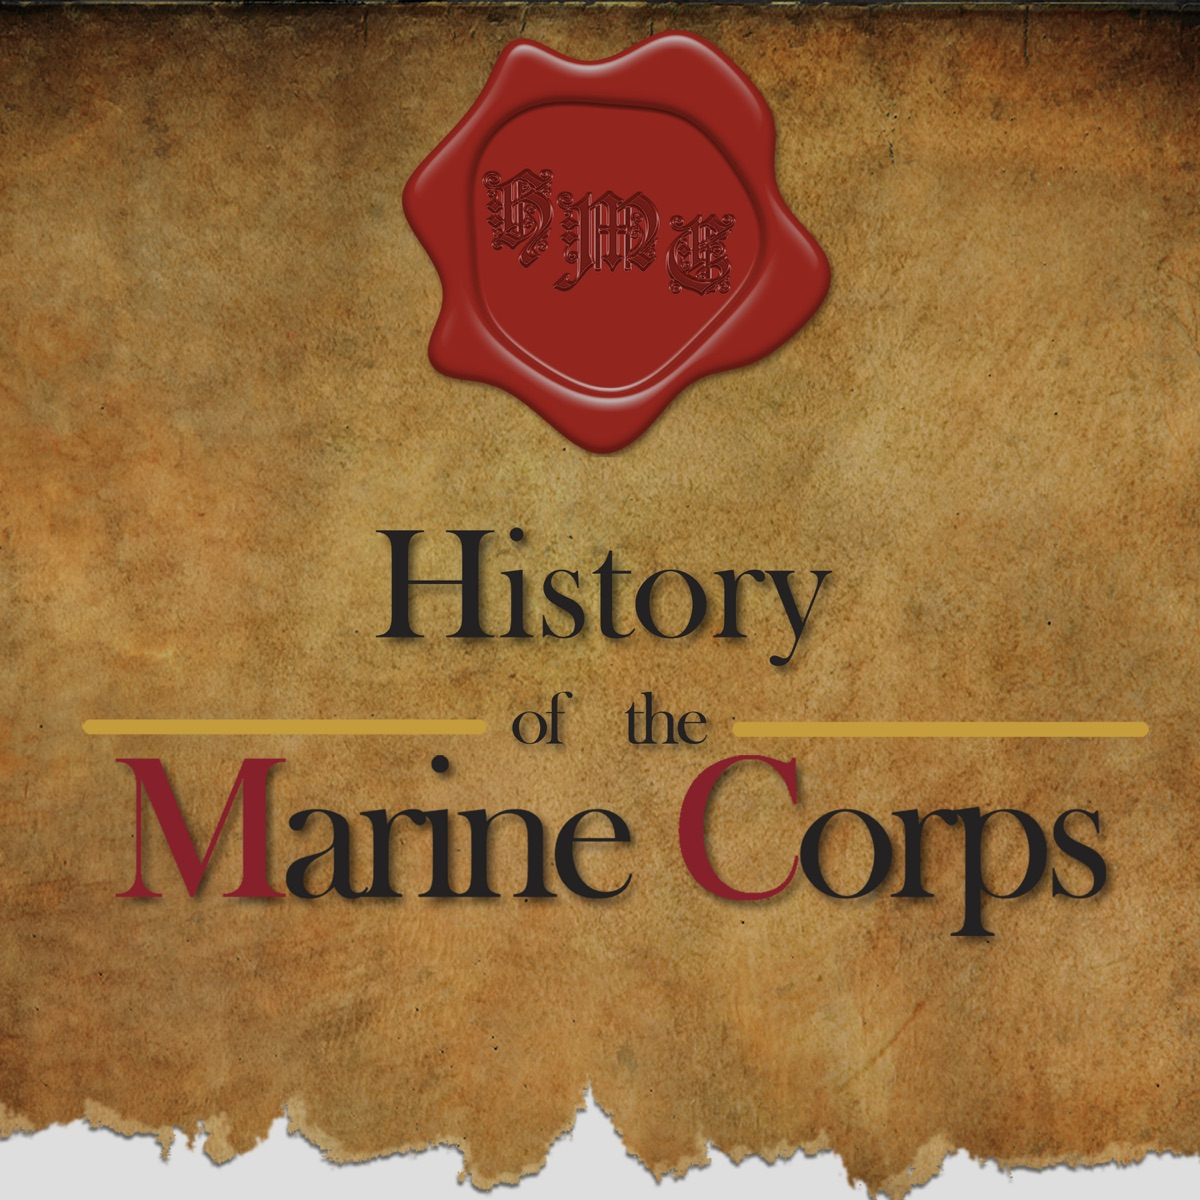 History of the Marine Corps